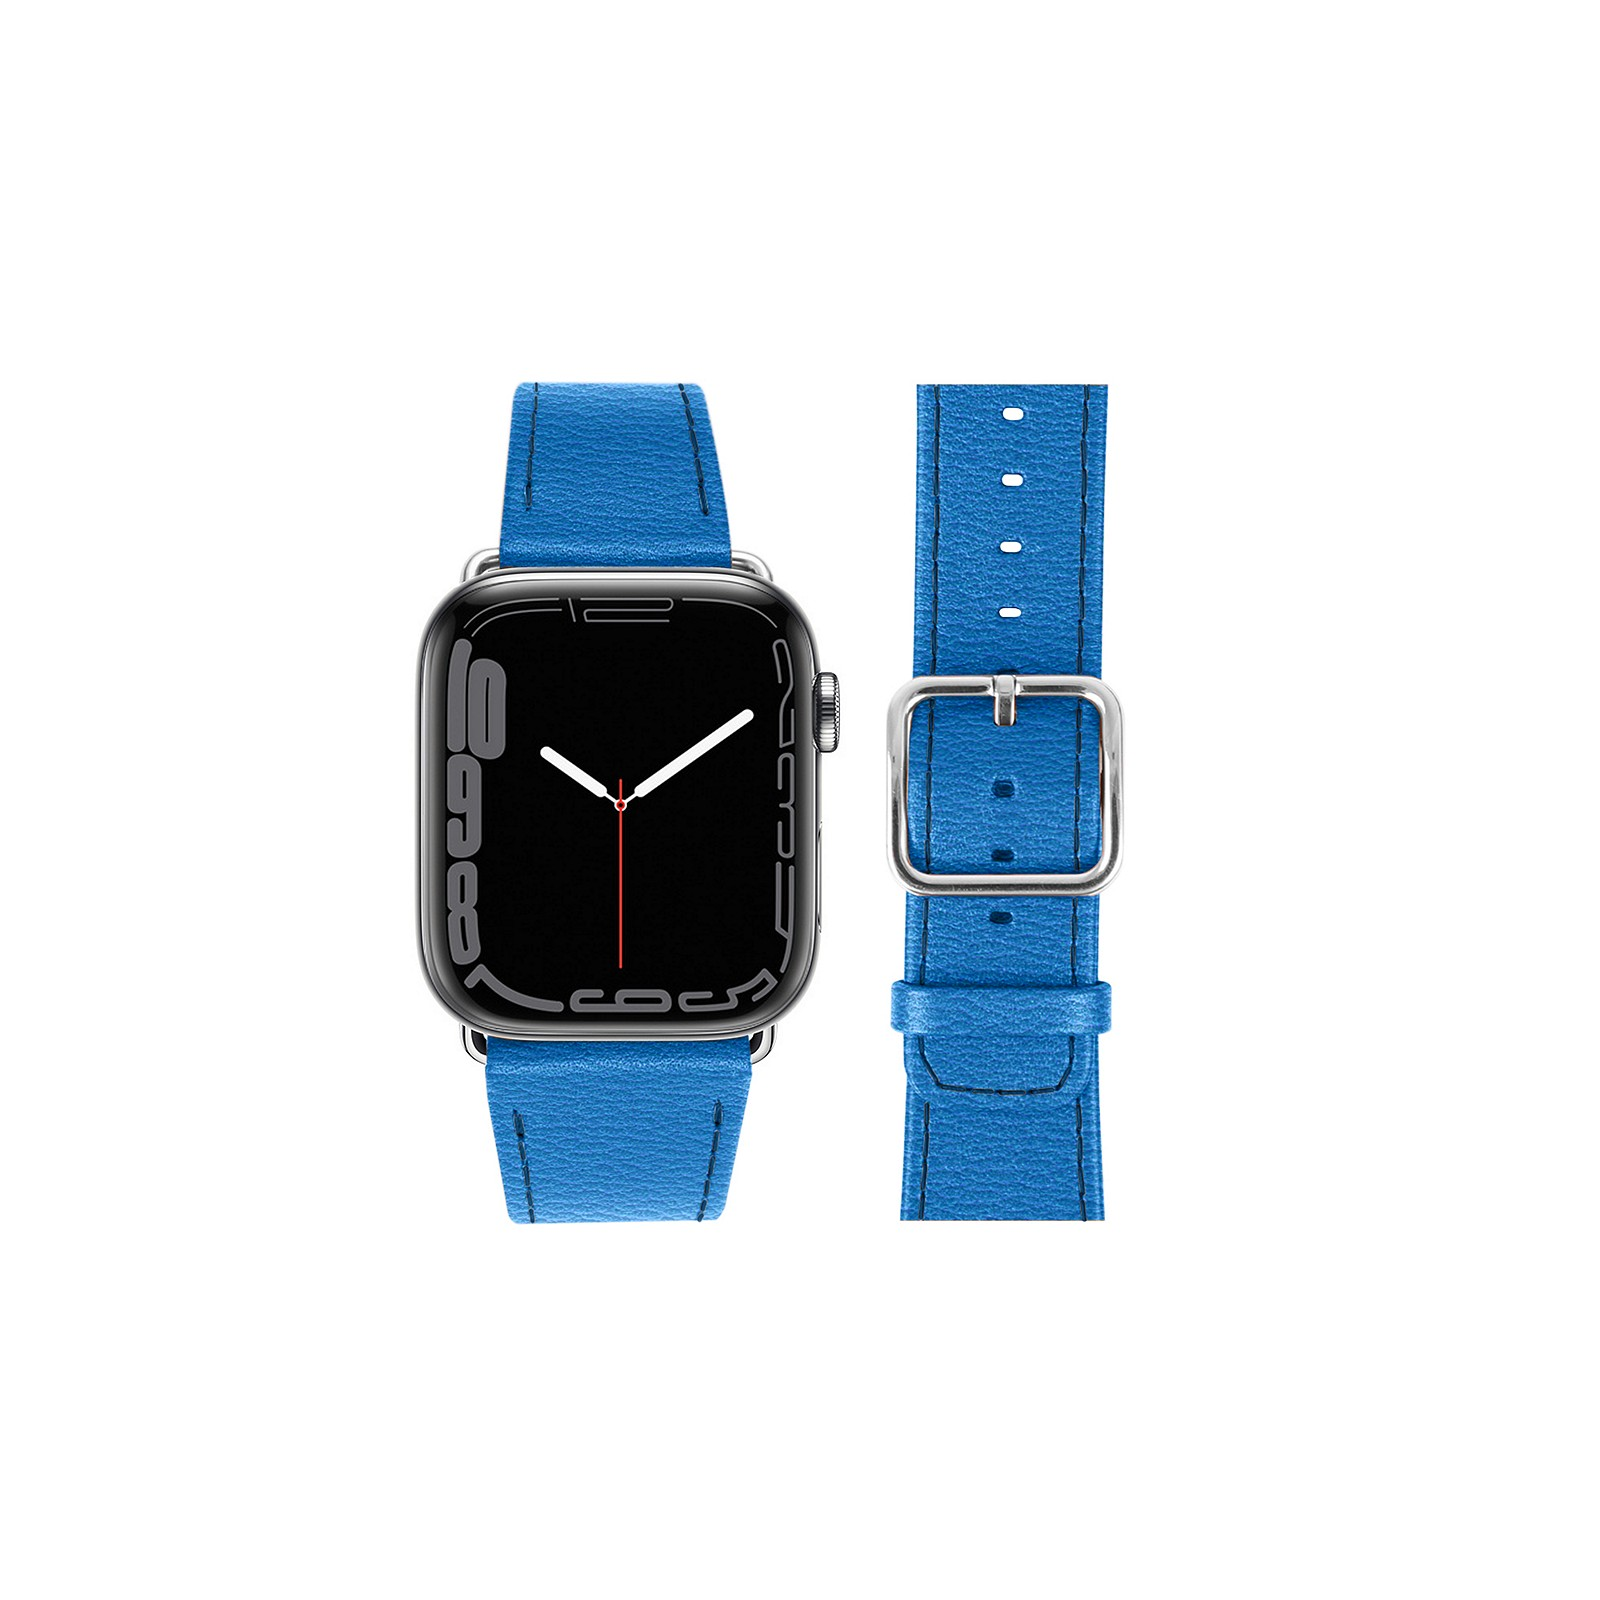 9c9ec407476f Correa de cuero para Apple Watch Series 4 - (44 mm) Cielo Azul - Correa de  cuero para Apple Watch Series 4 - (44 mm) Cielo Azul - 